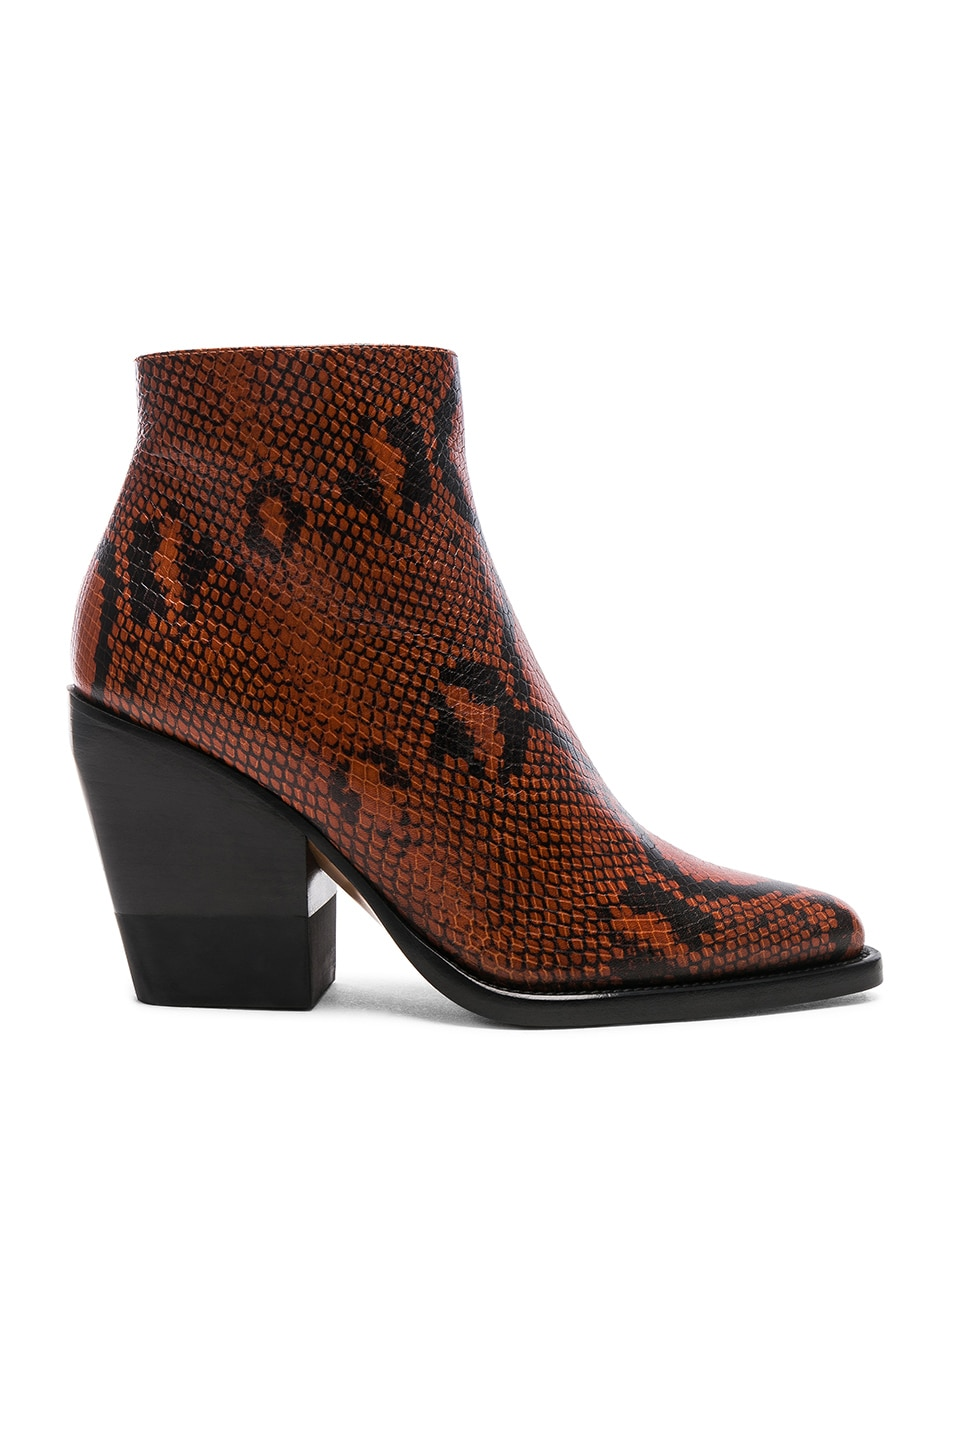 Image 1 of Chloe Python Rylee Print Leather Ankle Boots in Brown